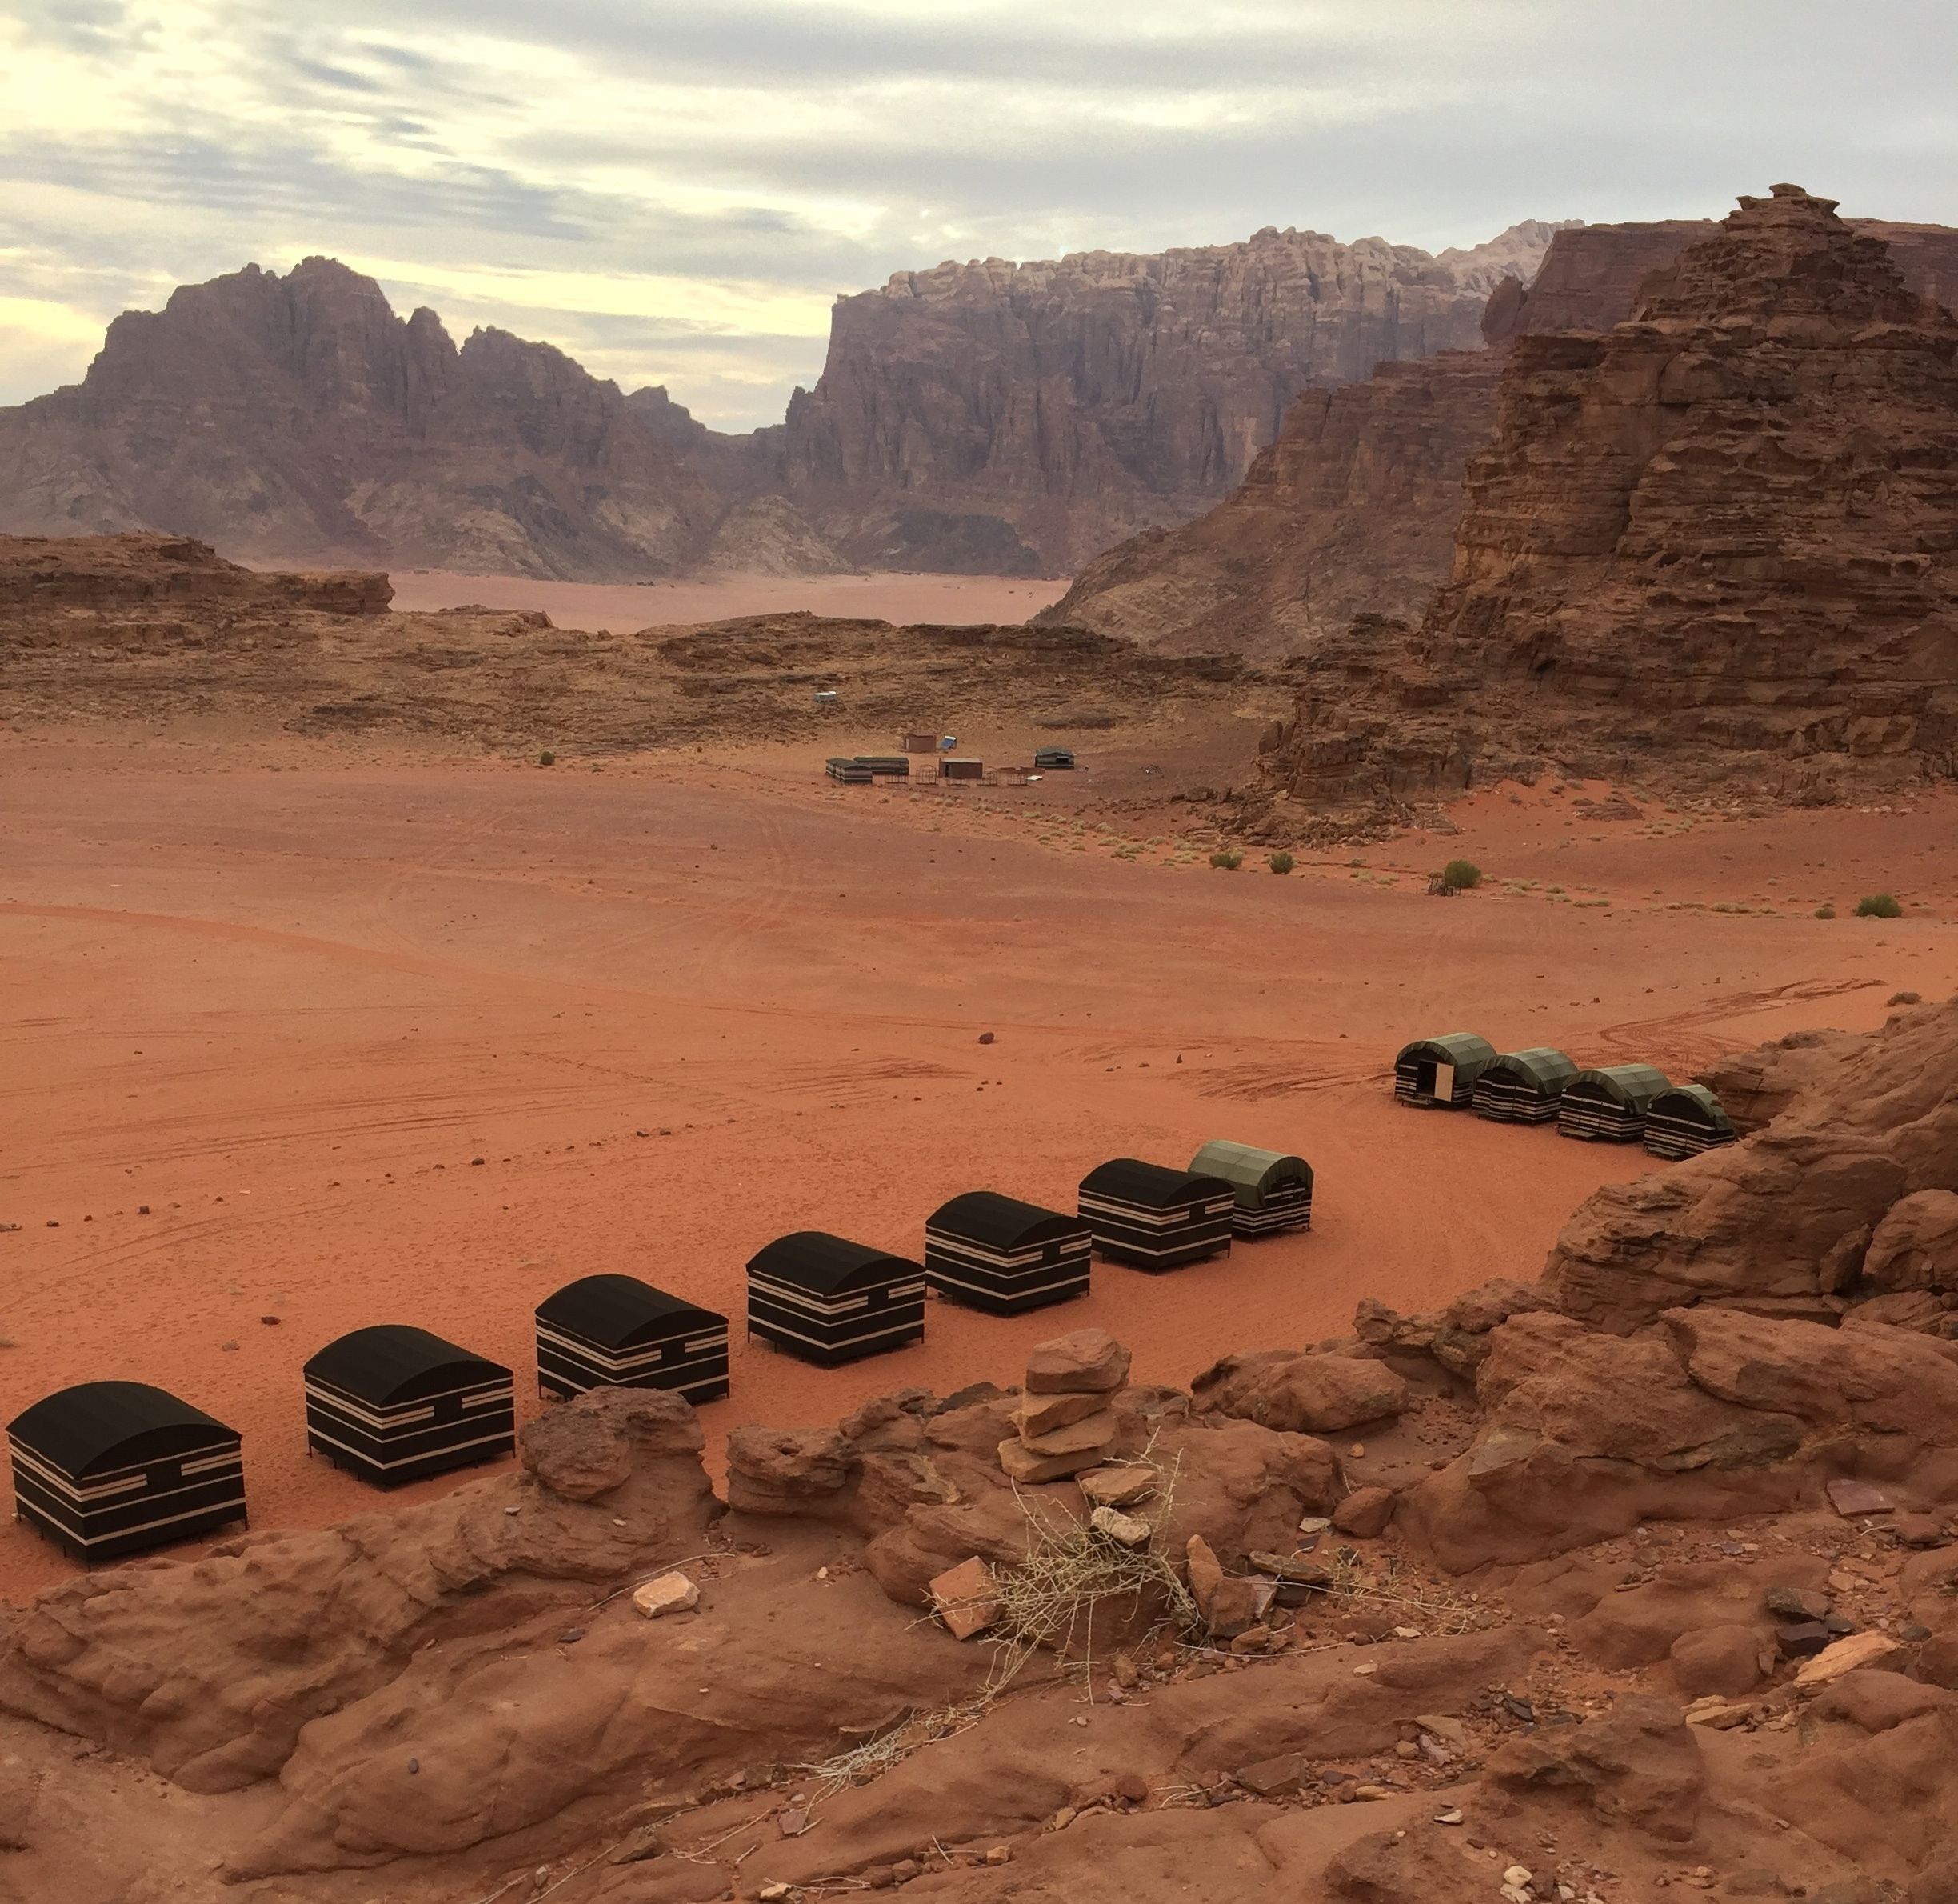 view from our bedouin camp in wadi rum